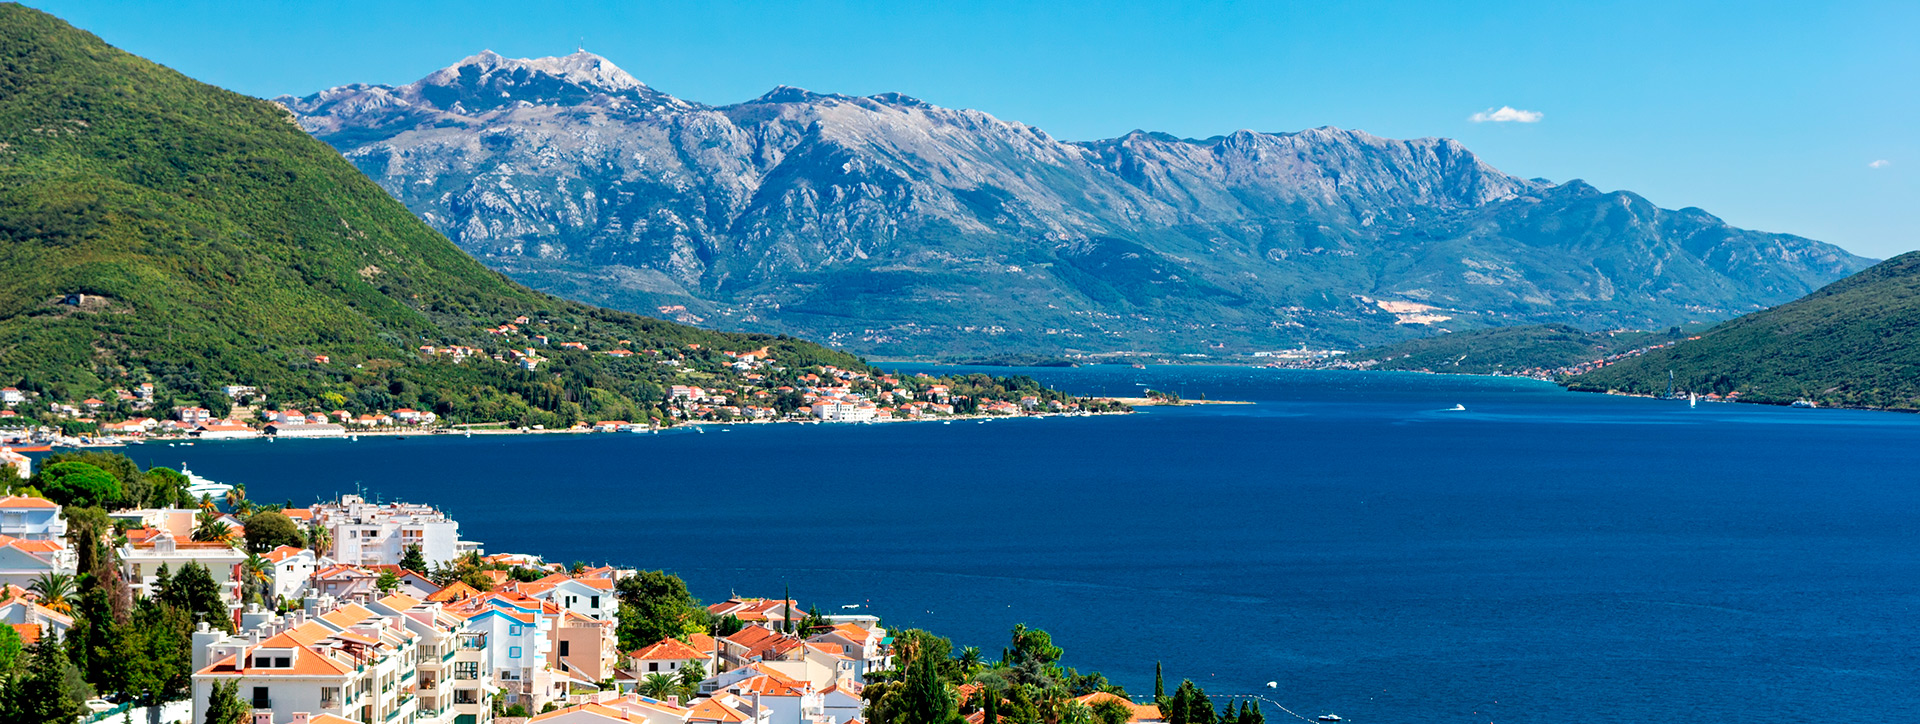 View of the Bay of Kotor, Herceg Novi, Montenegro - Adriatic sailing routes of SimpleSail